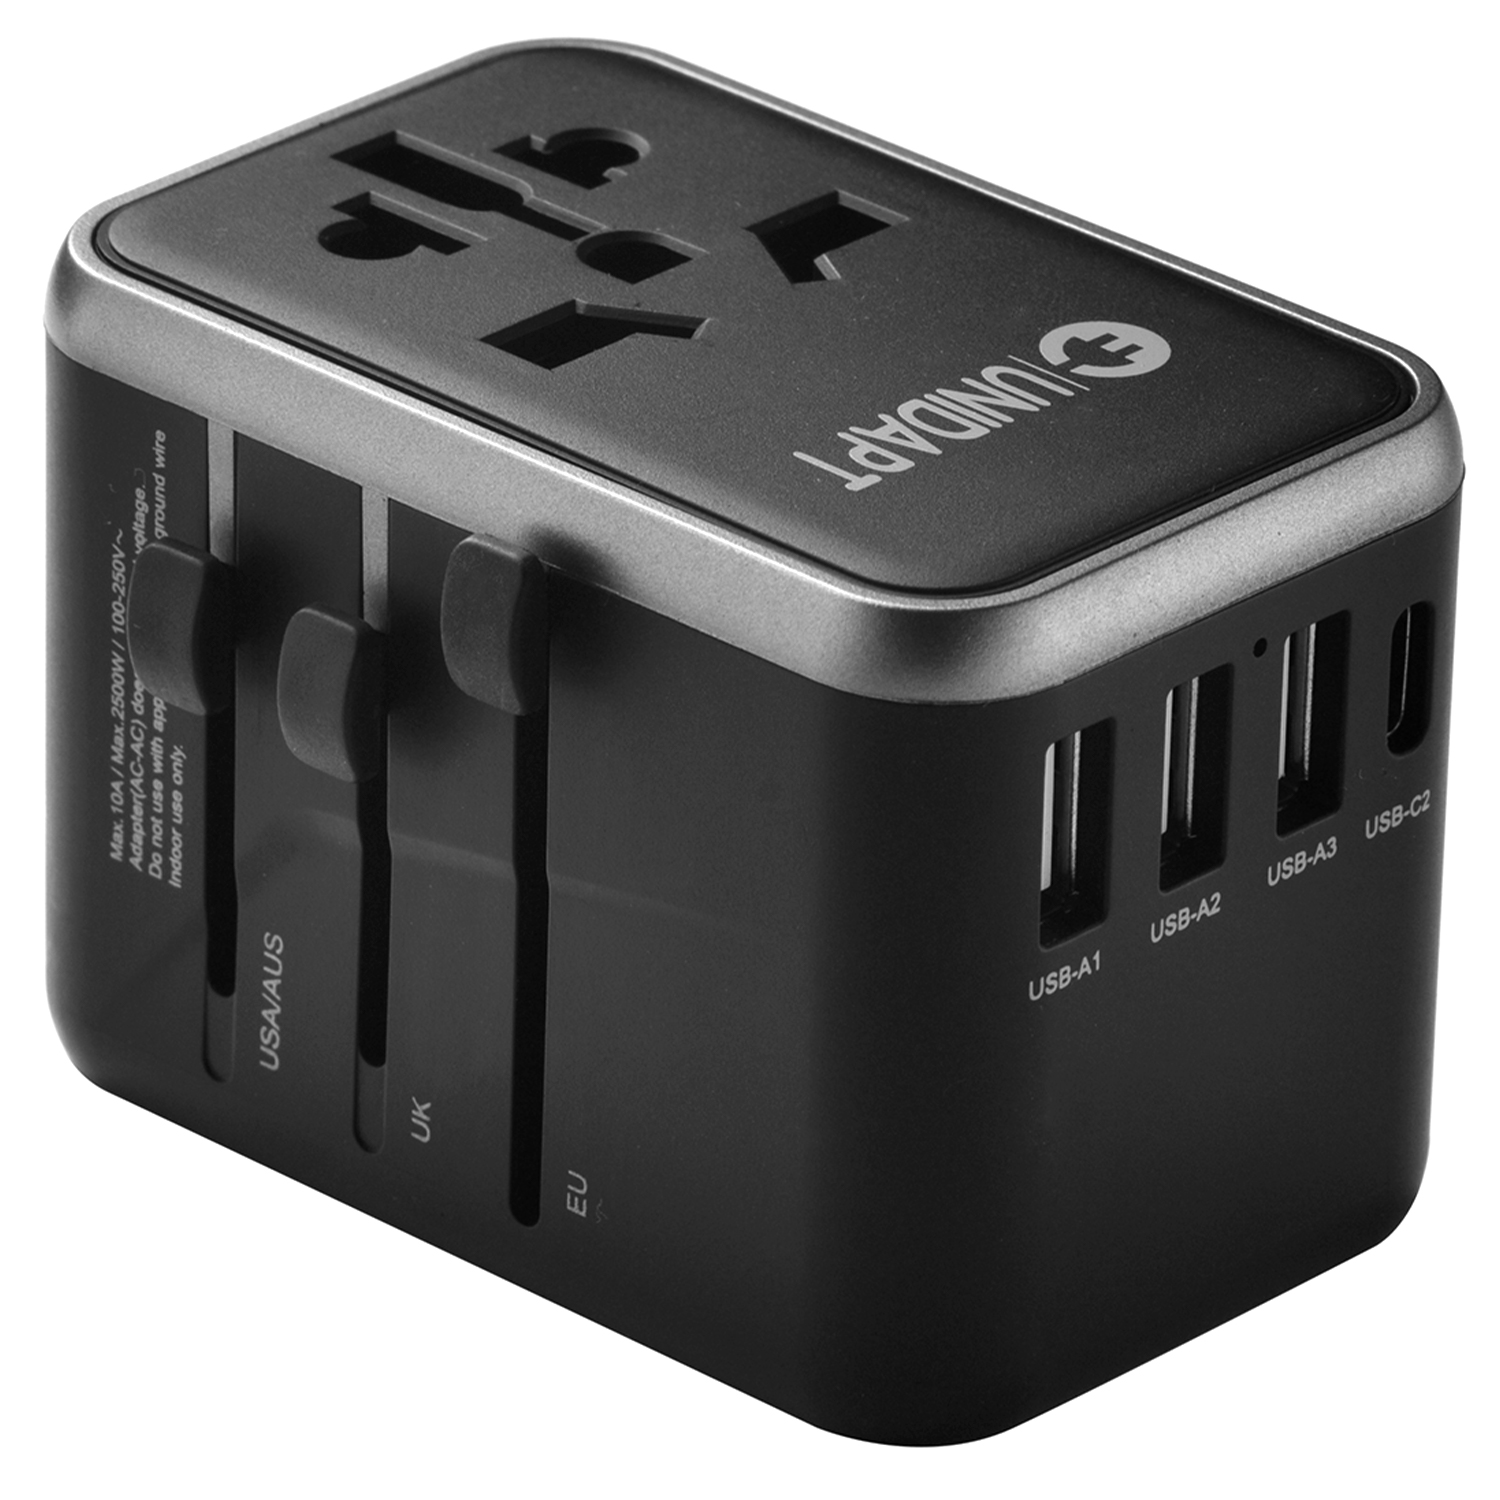 Universal Travel Adapter 61W Universal Travel Adapter – GaN Type-C Charger, 3USB-A & 2 USB-C PD Fast Wall Plug Adapter